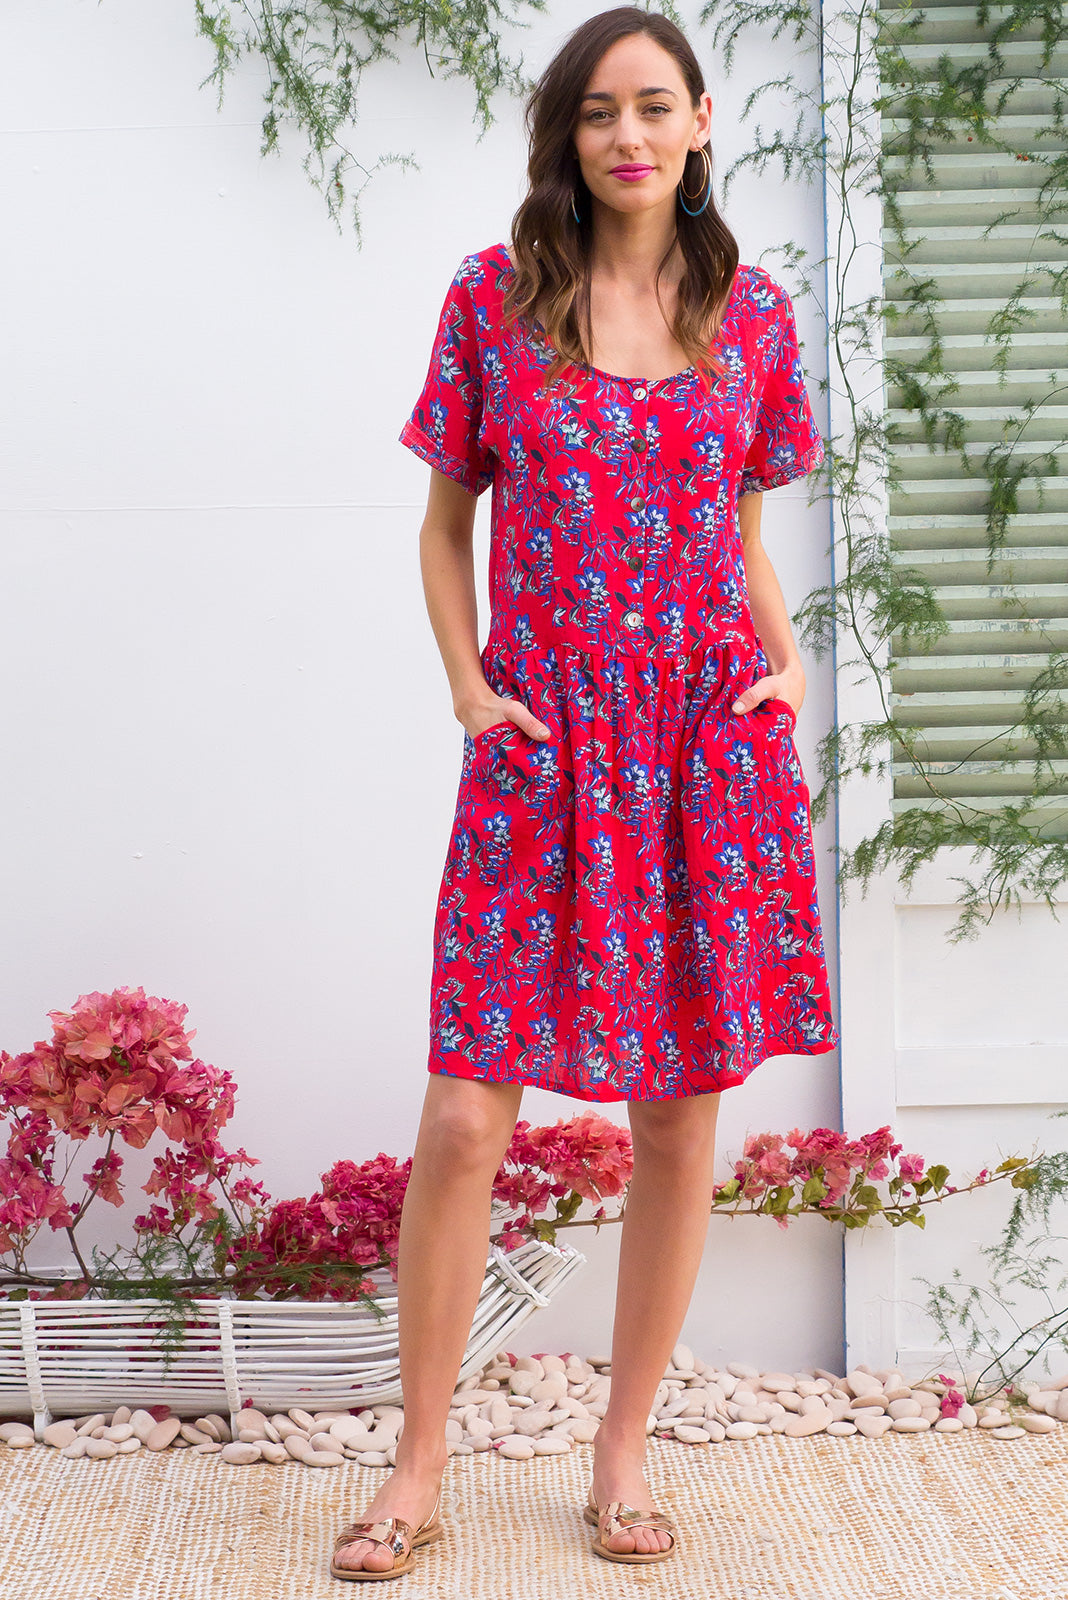 Rosella Rosetti Real Red dress features a button front to the drop waist and 2 front pockets in a gorgeous bright red floral bohemian print  print on a cotton polyester blend fabric